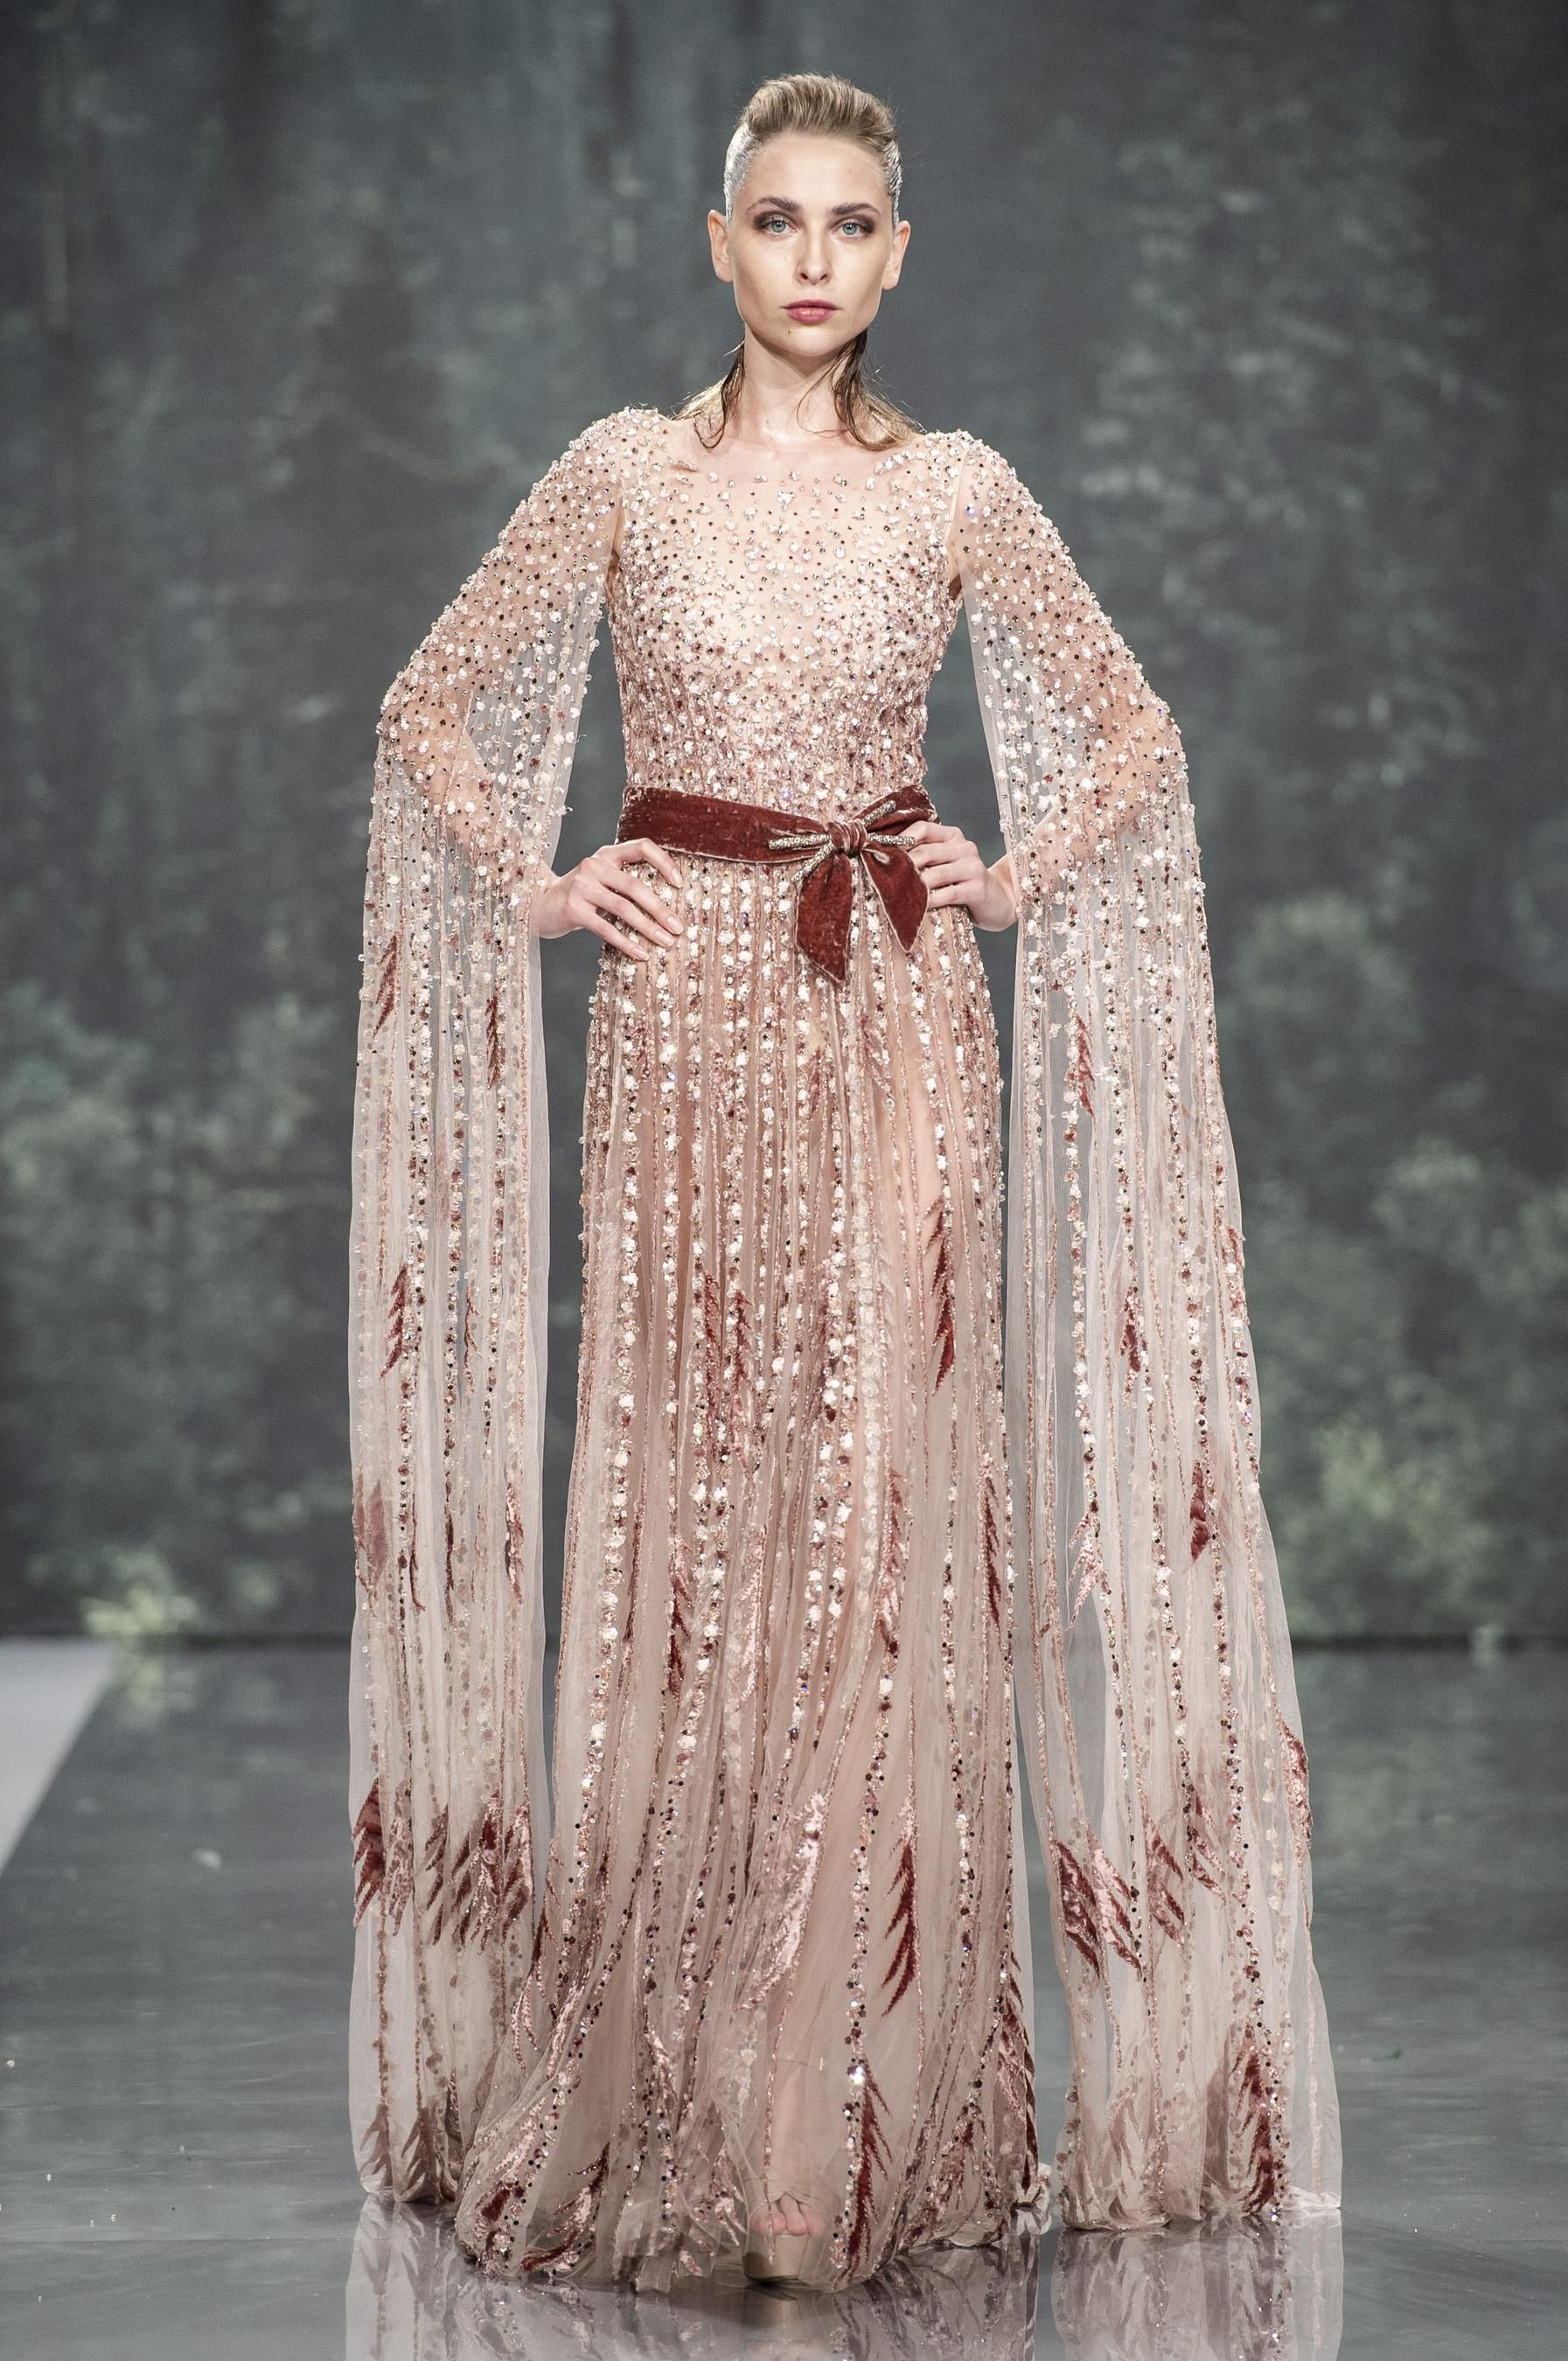 Défilé ziad nakad automnehiver couture beautiful gowns